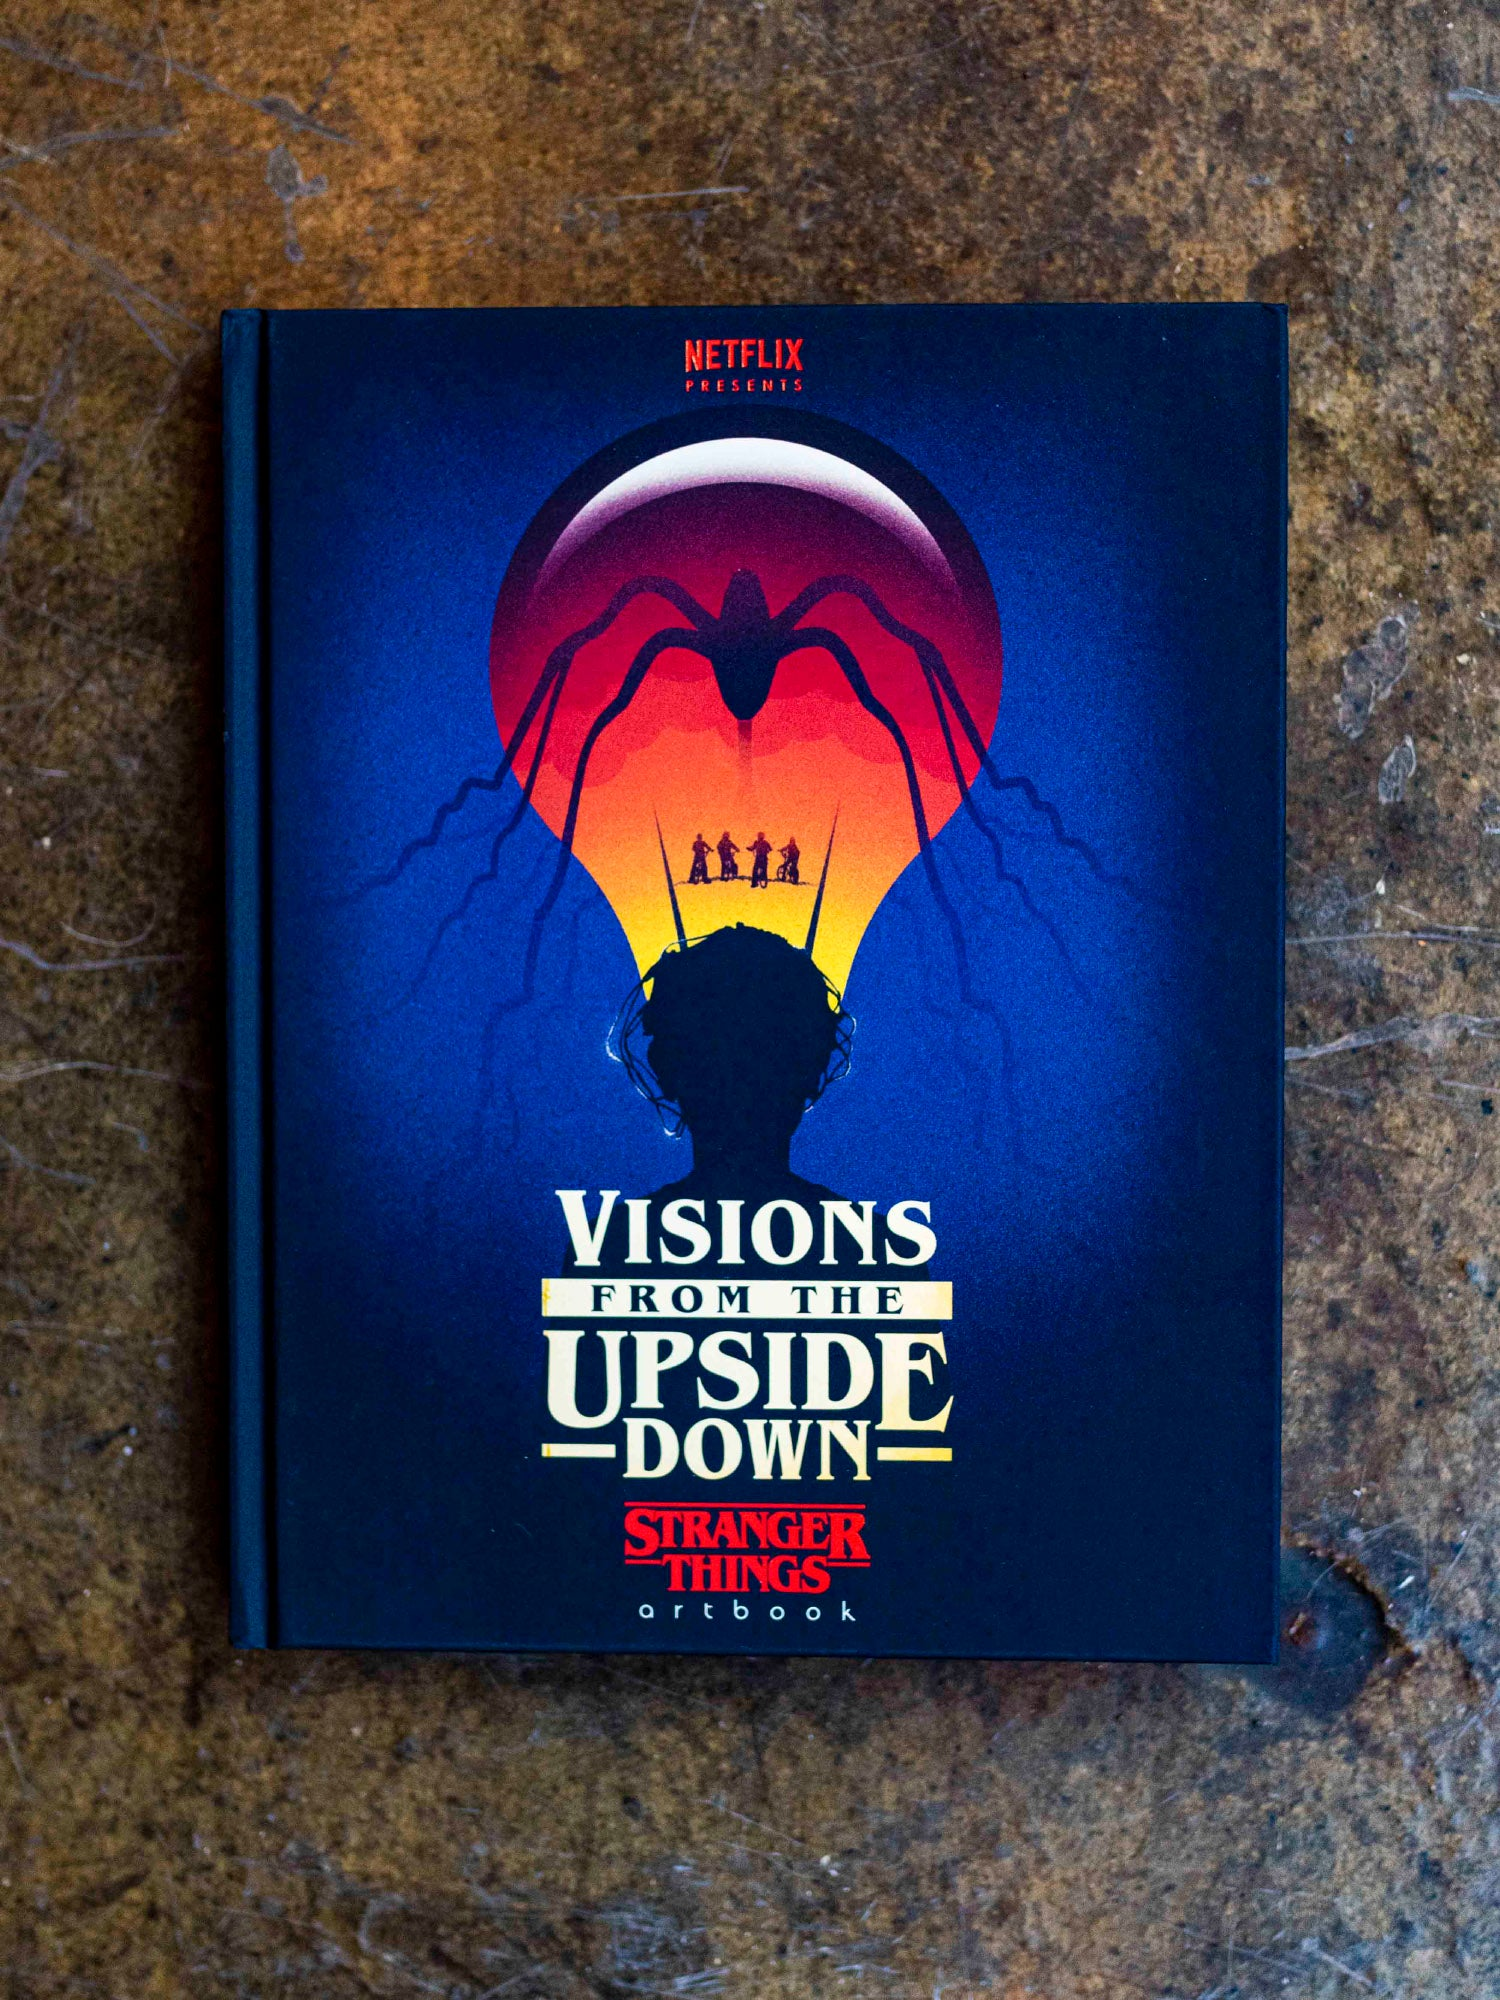 Visions from the Upside Down: Stranger Things Art Book